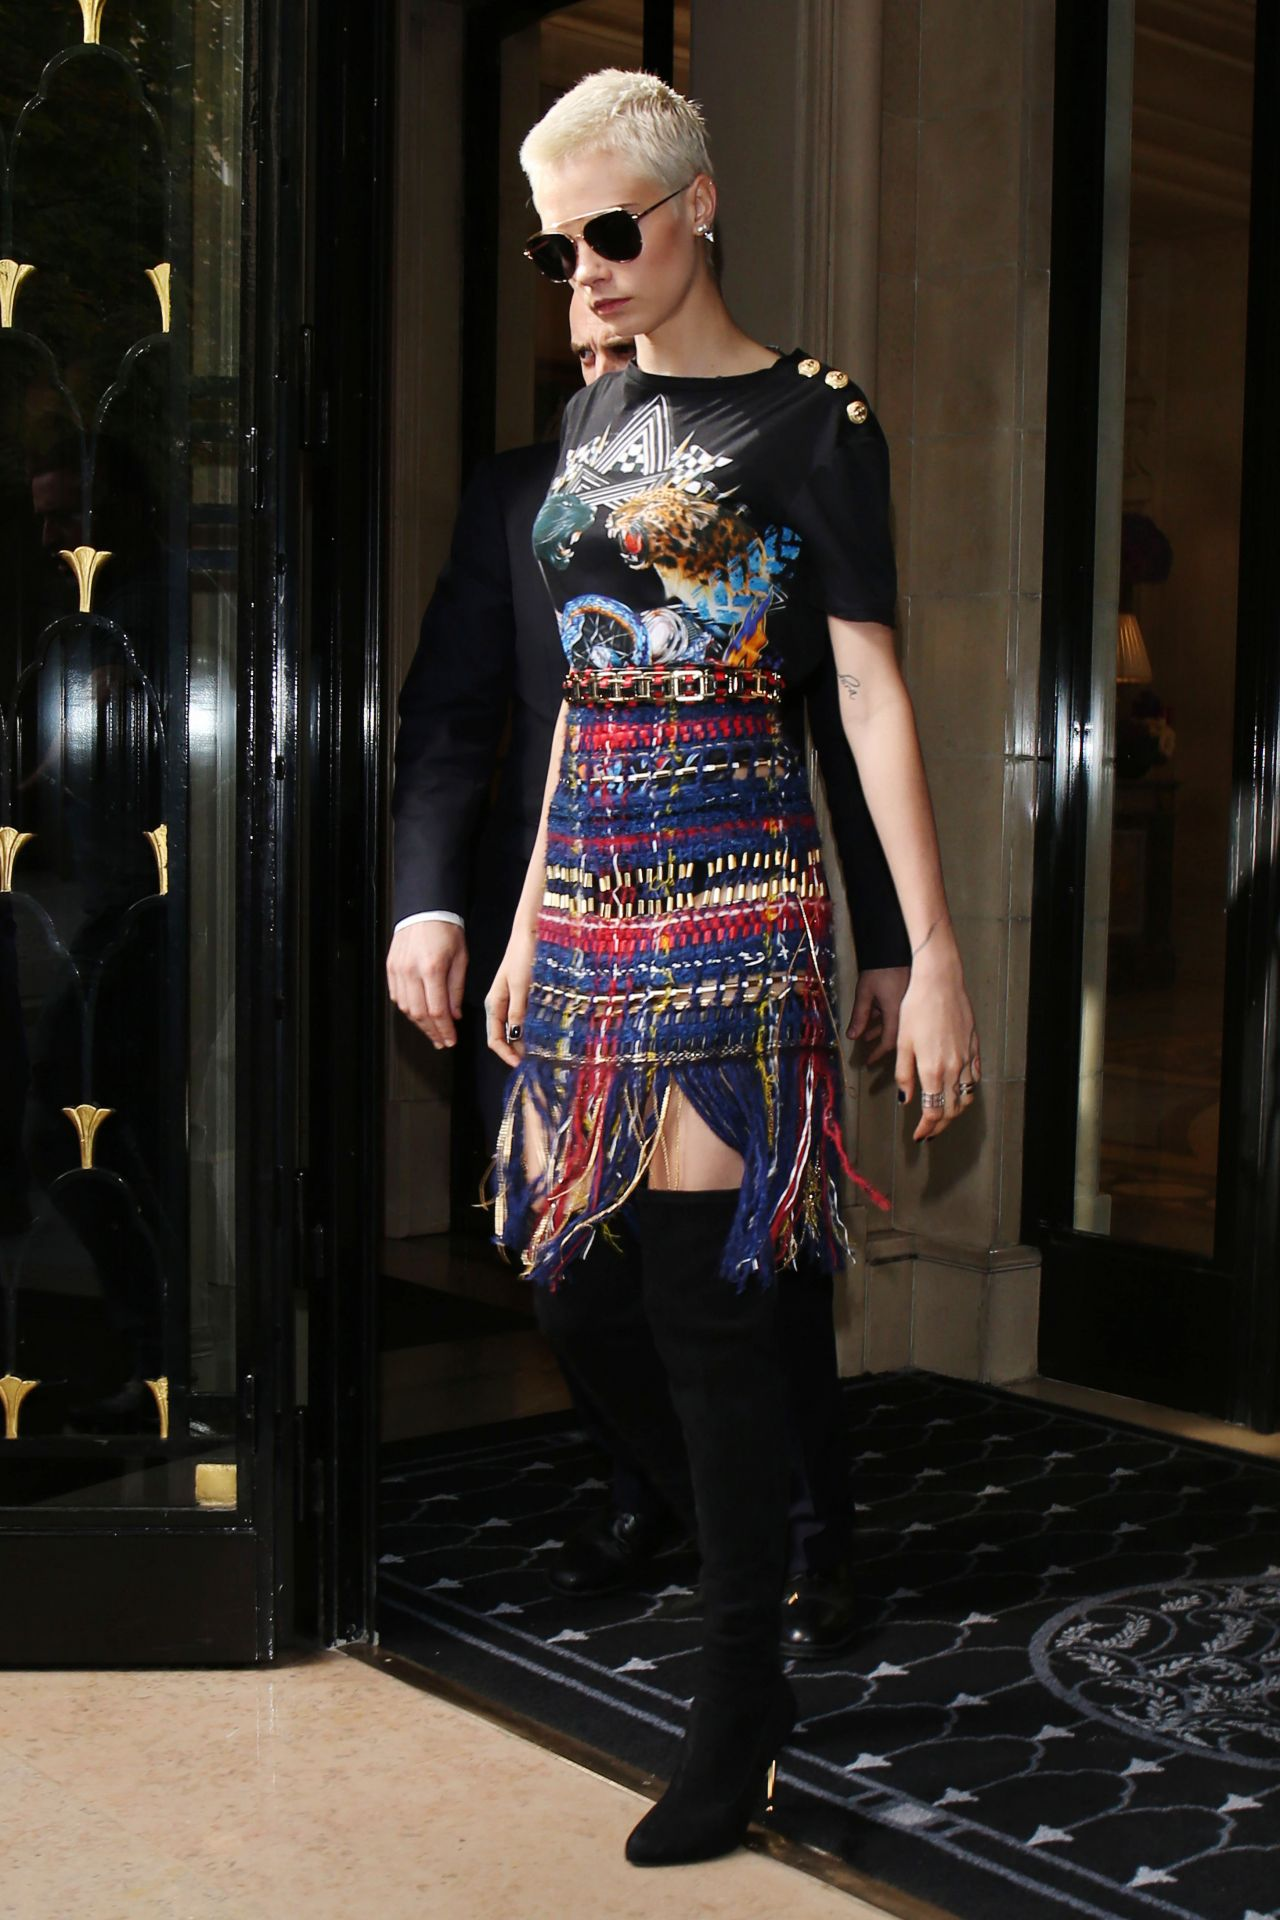 Cara Delevingne Fashion And Style Paris France 07 05 2017